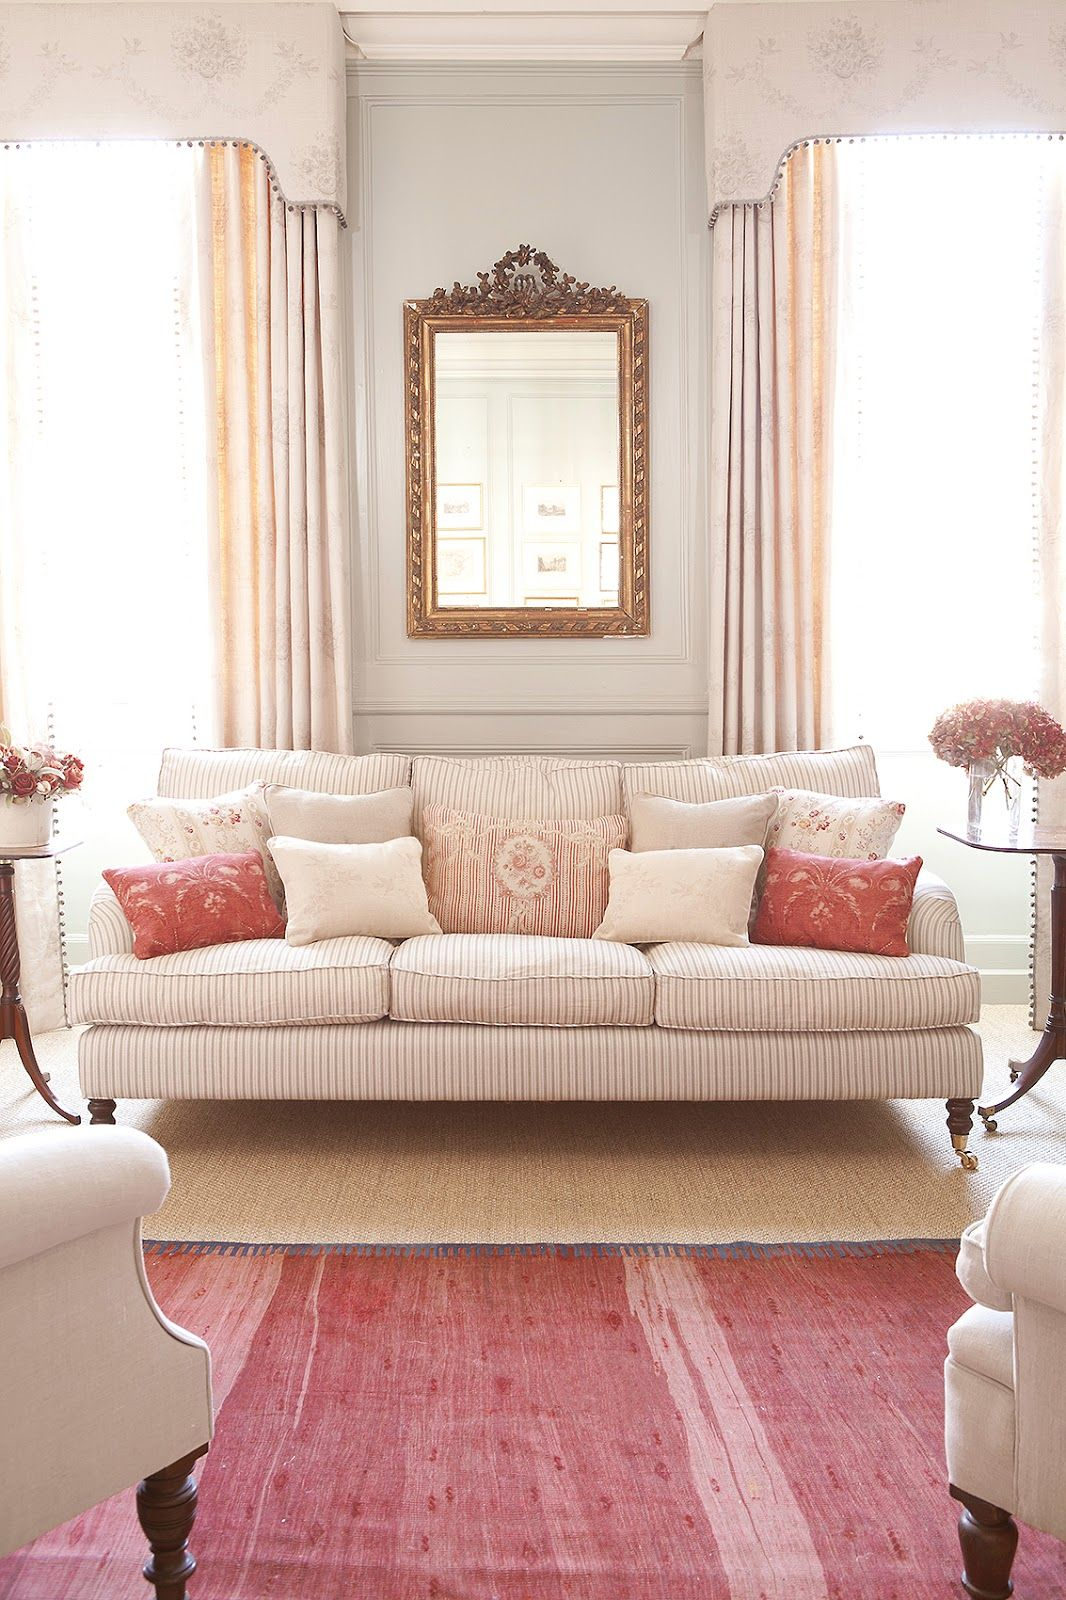 Hydrangea hill cottage english country decorating - Hydrangea Hill Cottage Kate Forman S English Country Charm